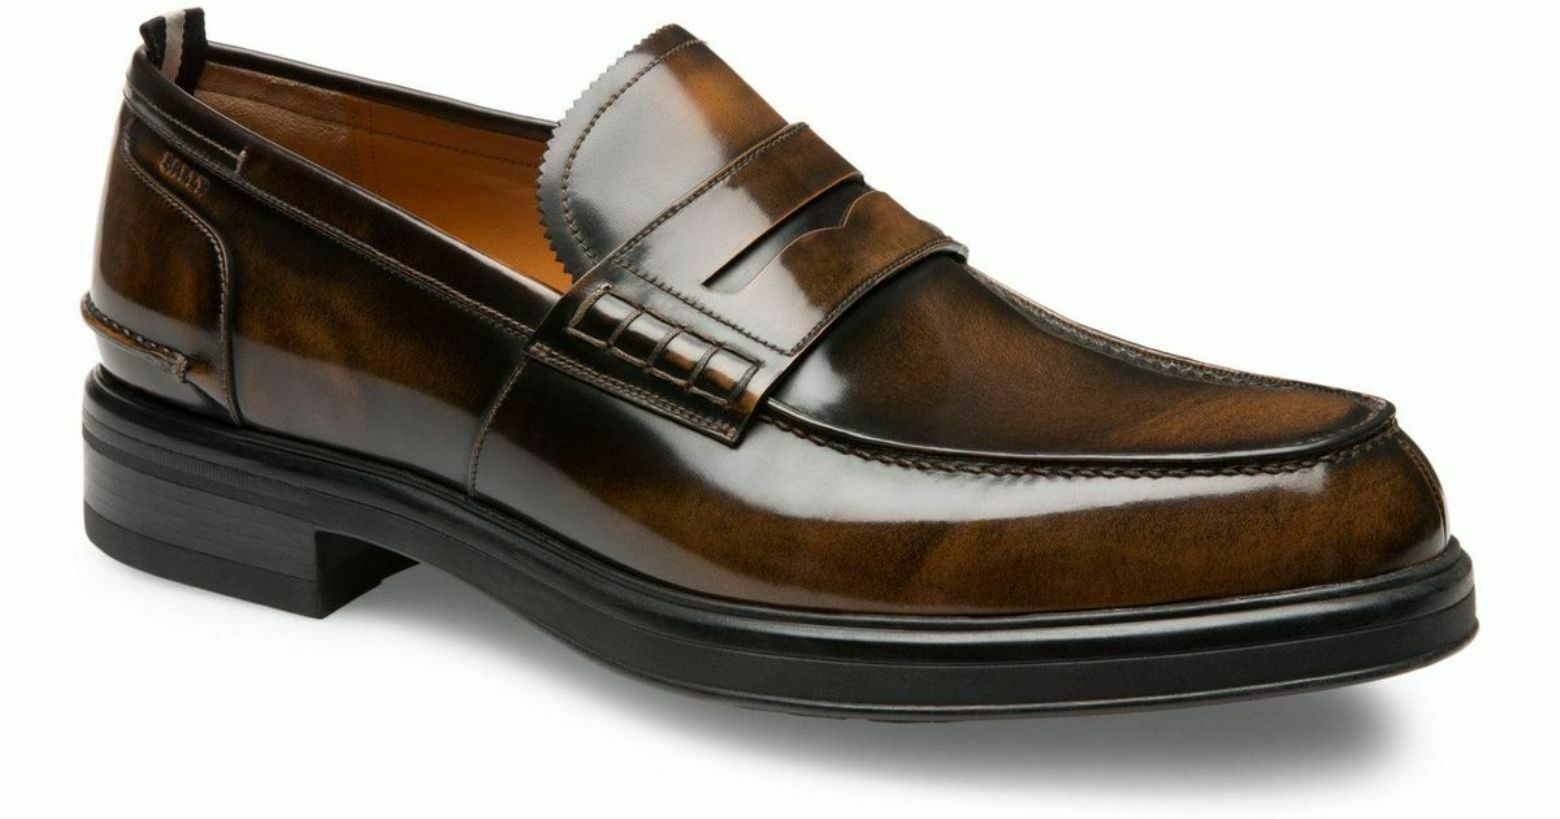 NIB BALLY MODY Marroneee HONEY BRUSHED LEATHER PENNY LOAFERS 12 US 45 SWISS